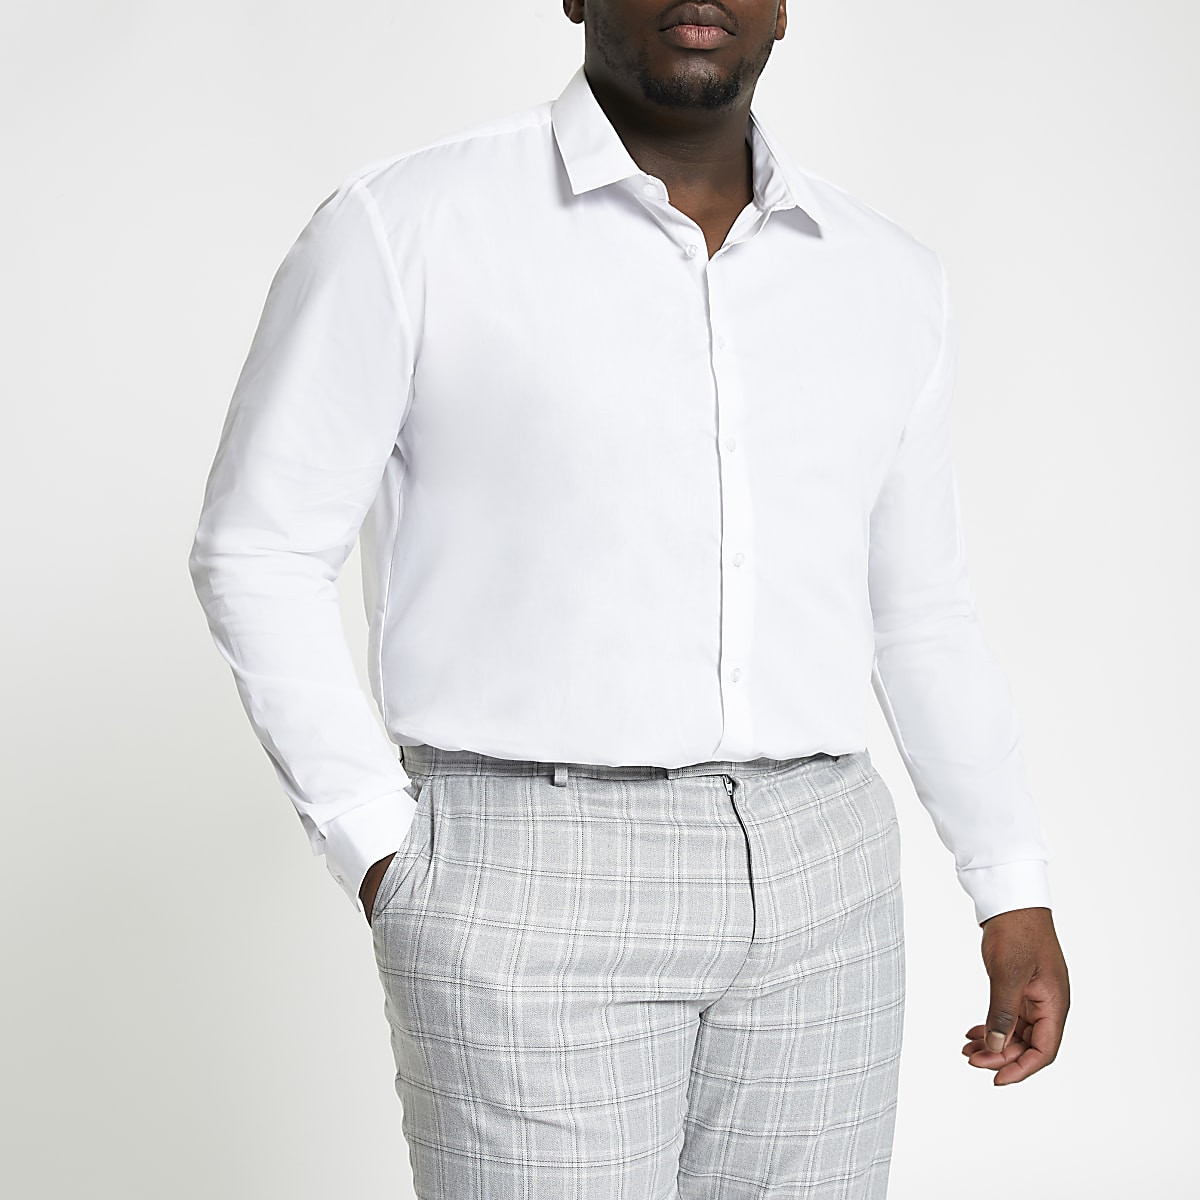 Big and Tall white long sleeve shirt